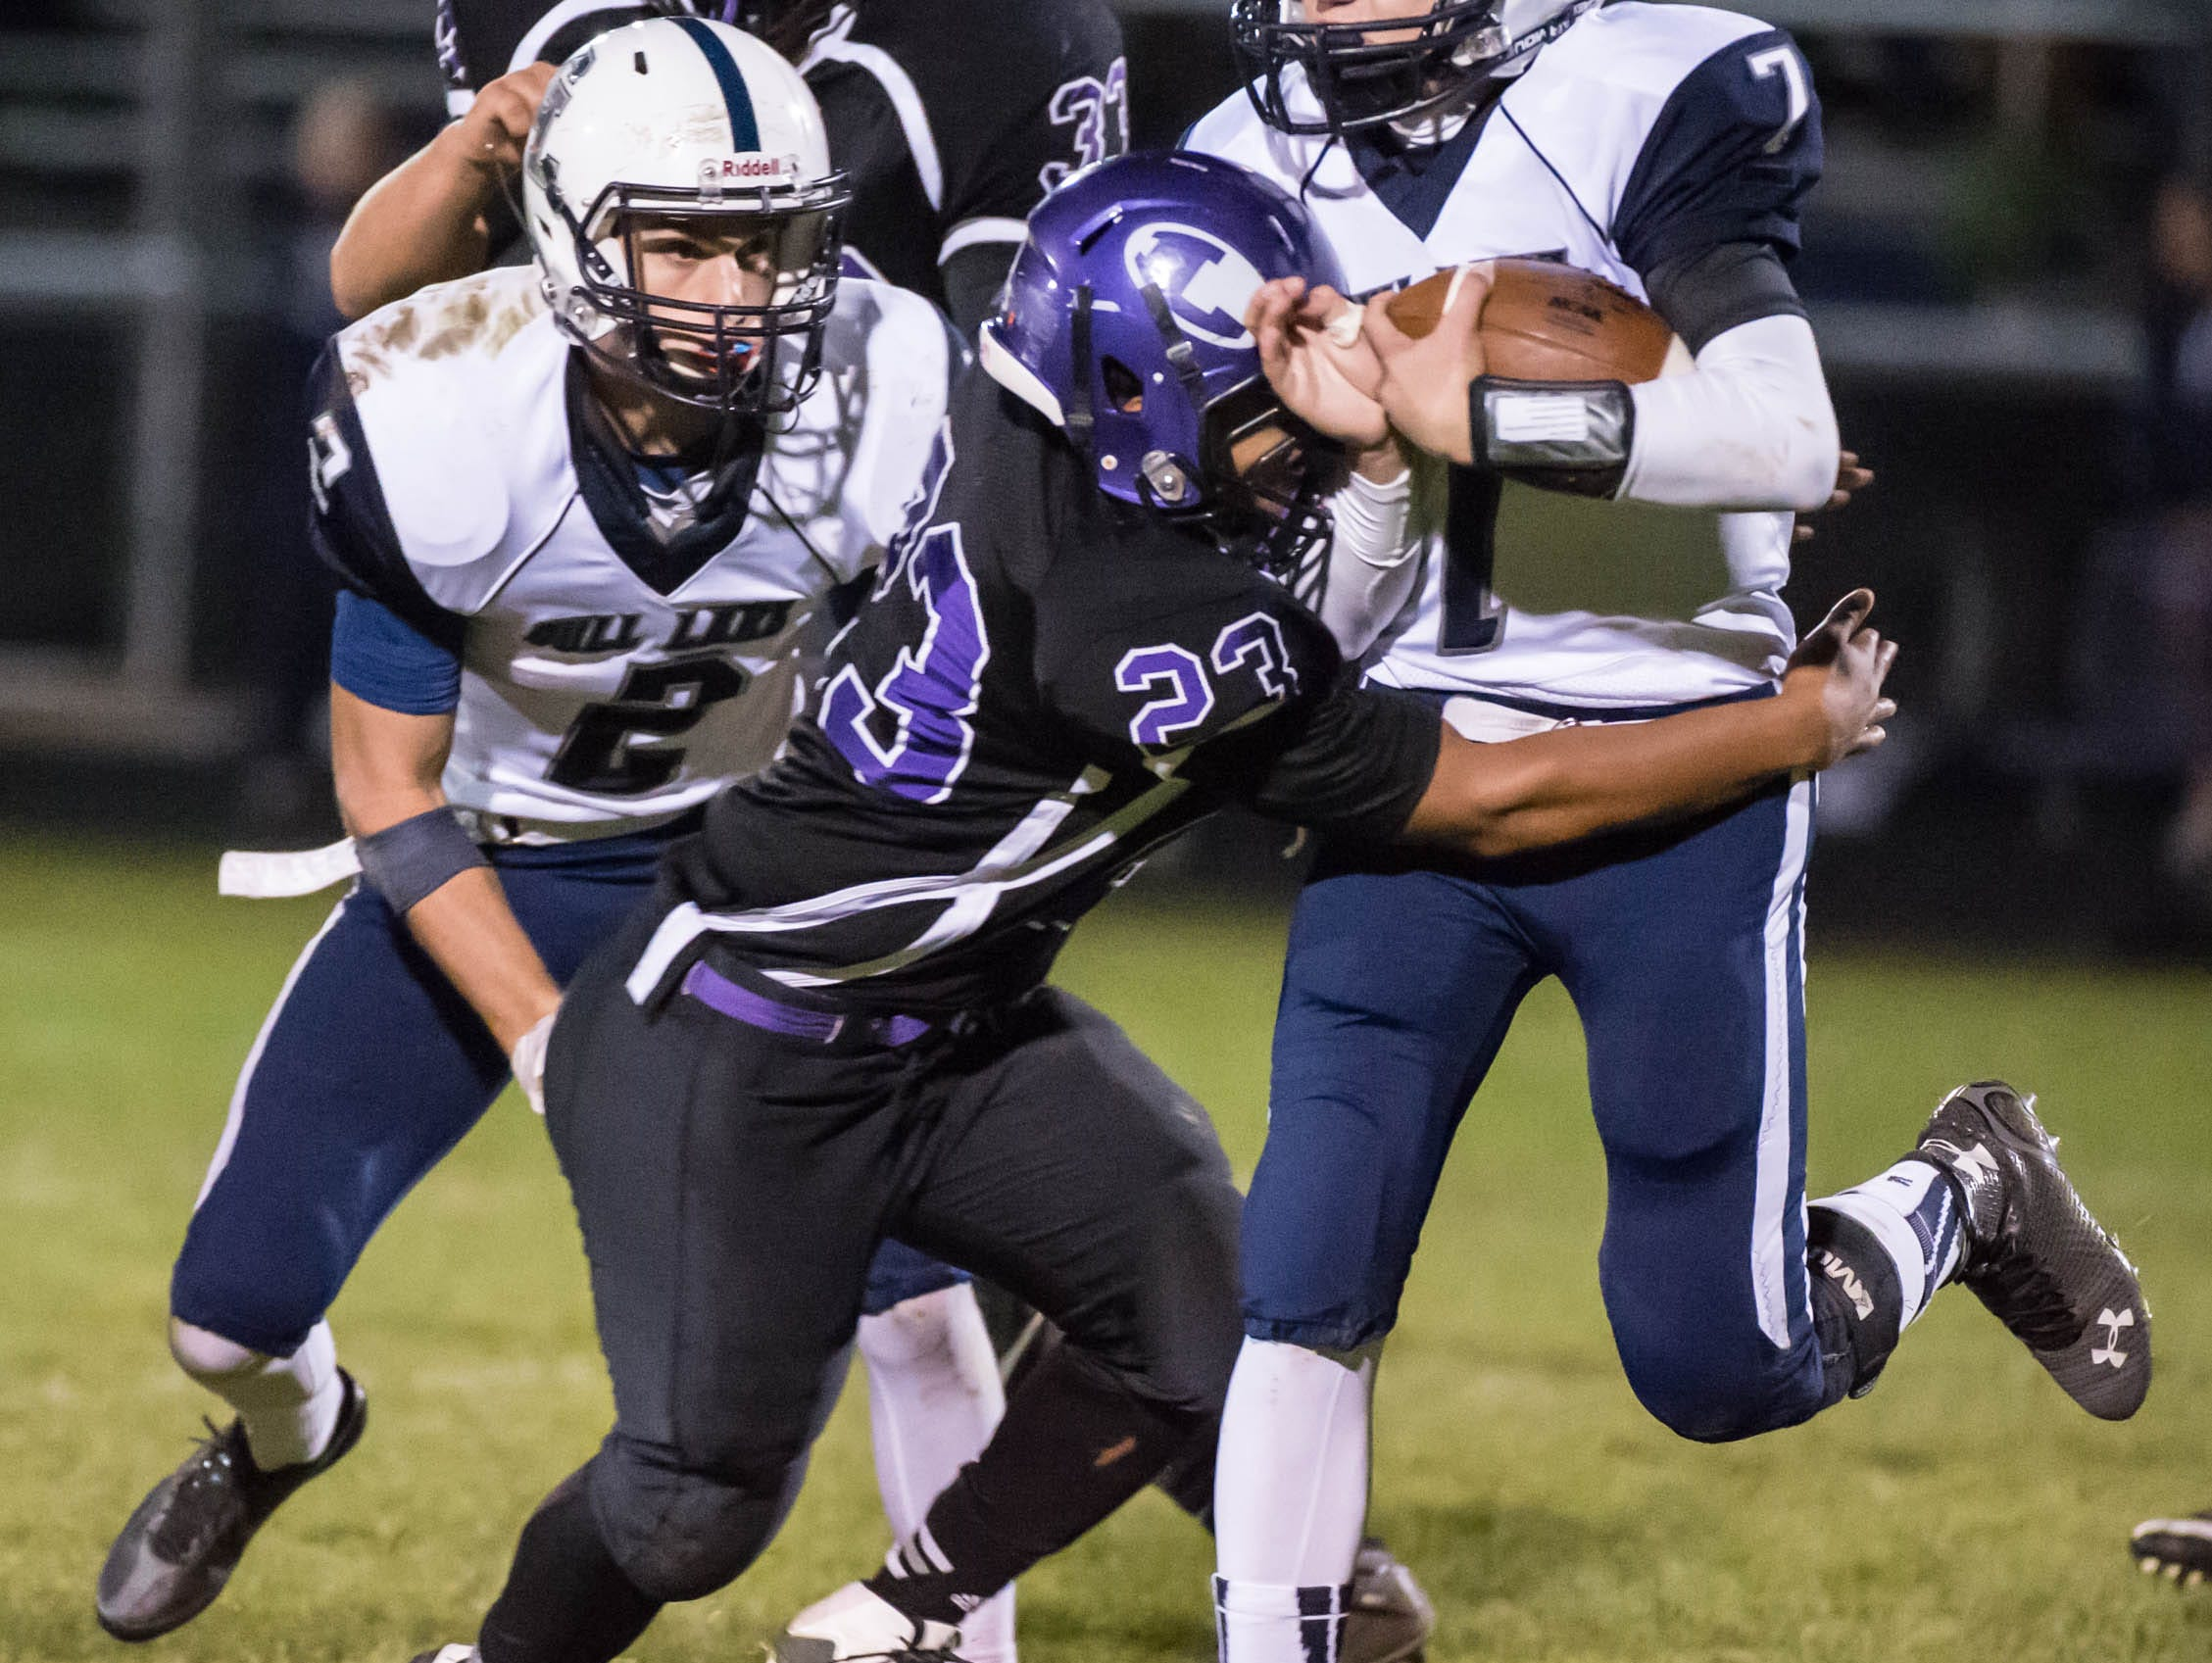 Lakeview's CJ Foster (23) tackles Gull Lakes's Hunter Snyder (7).